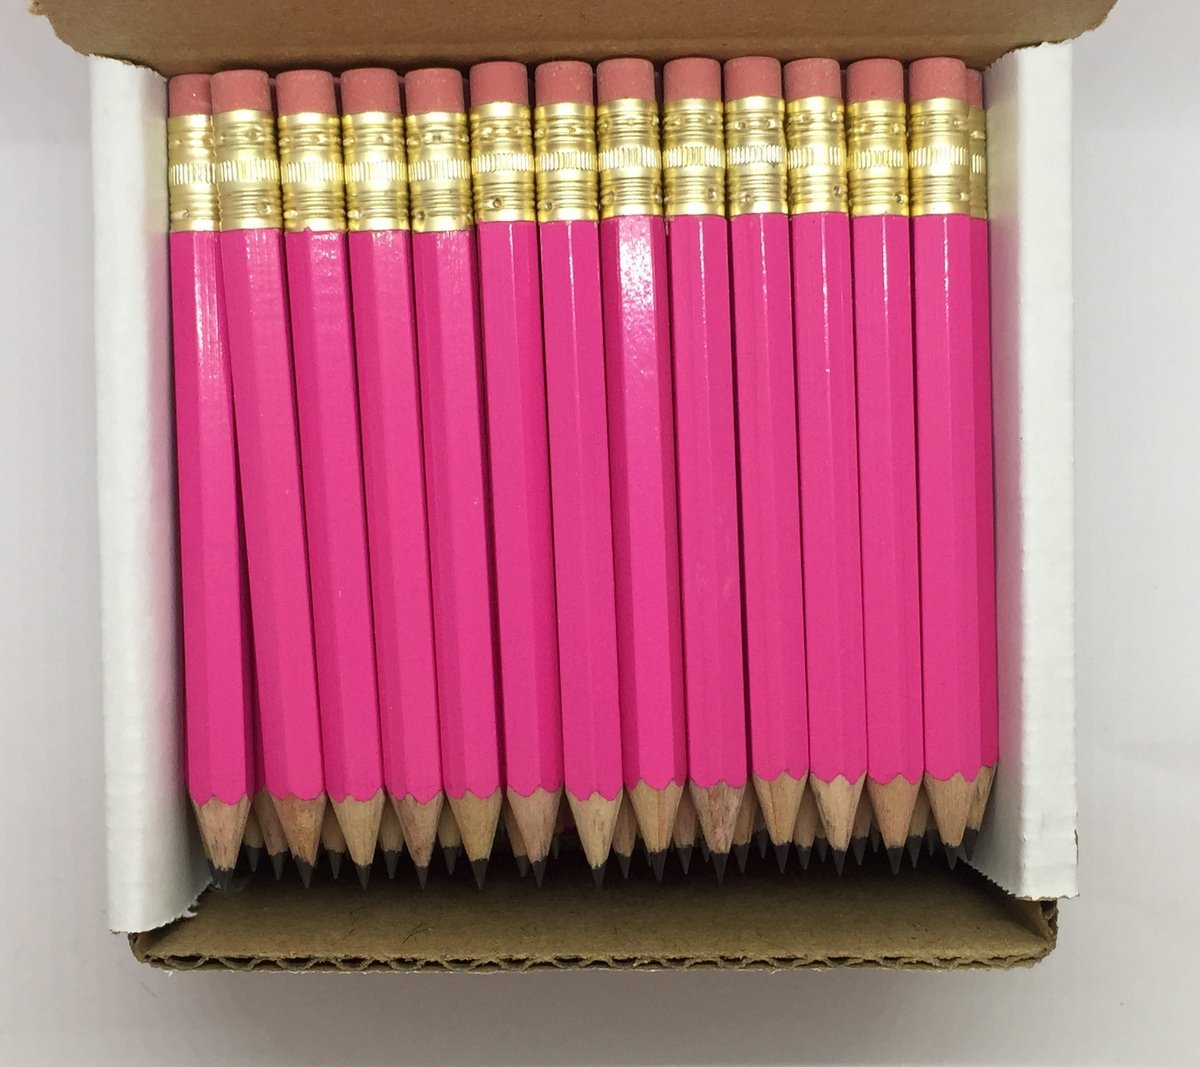 Half Pencils with Eraser - Golf, Classroom, Pew, Short, Mini - Hexagon, Sharpened, Non Toxic, 2 Pencil, Color - Deep Pink, (Box of 48) Golf Pocket Pencils by Express Pencils by Express Pencils